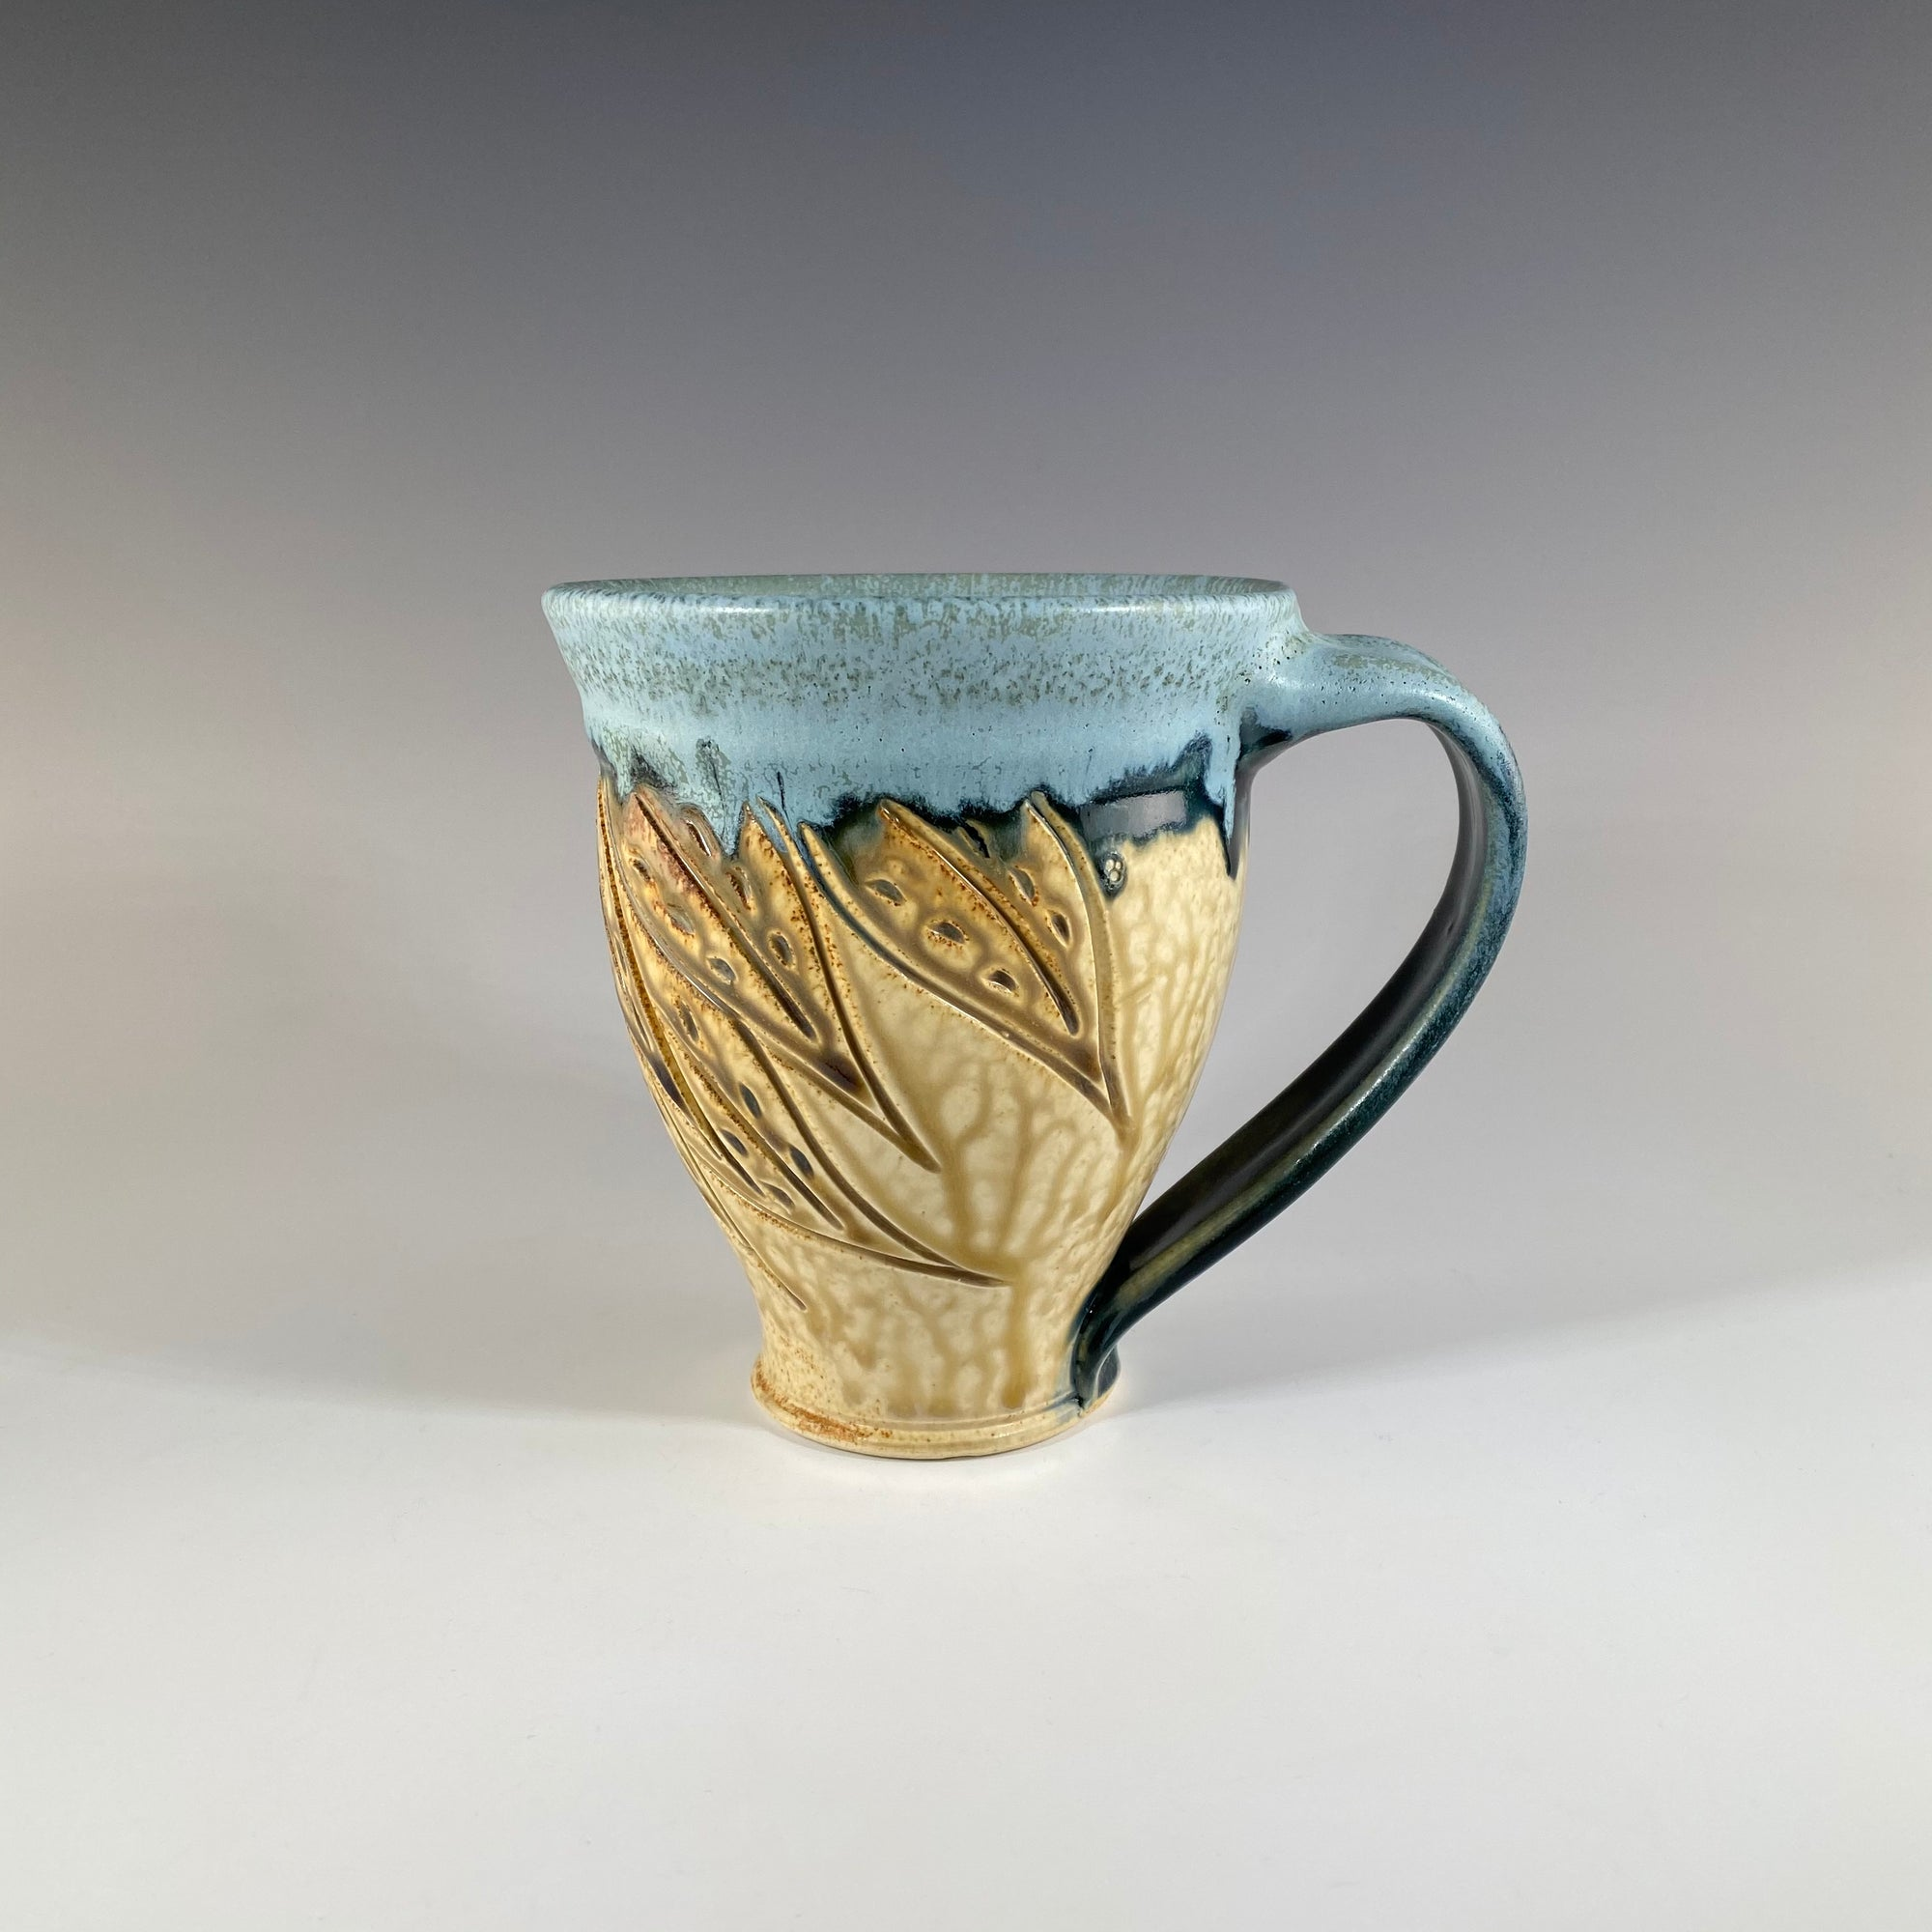 Carved Mug in Teal and Tan with Leaves - Heart of the Home PA